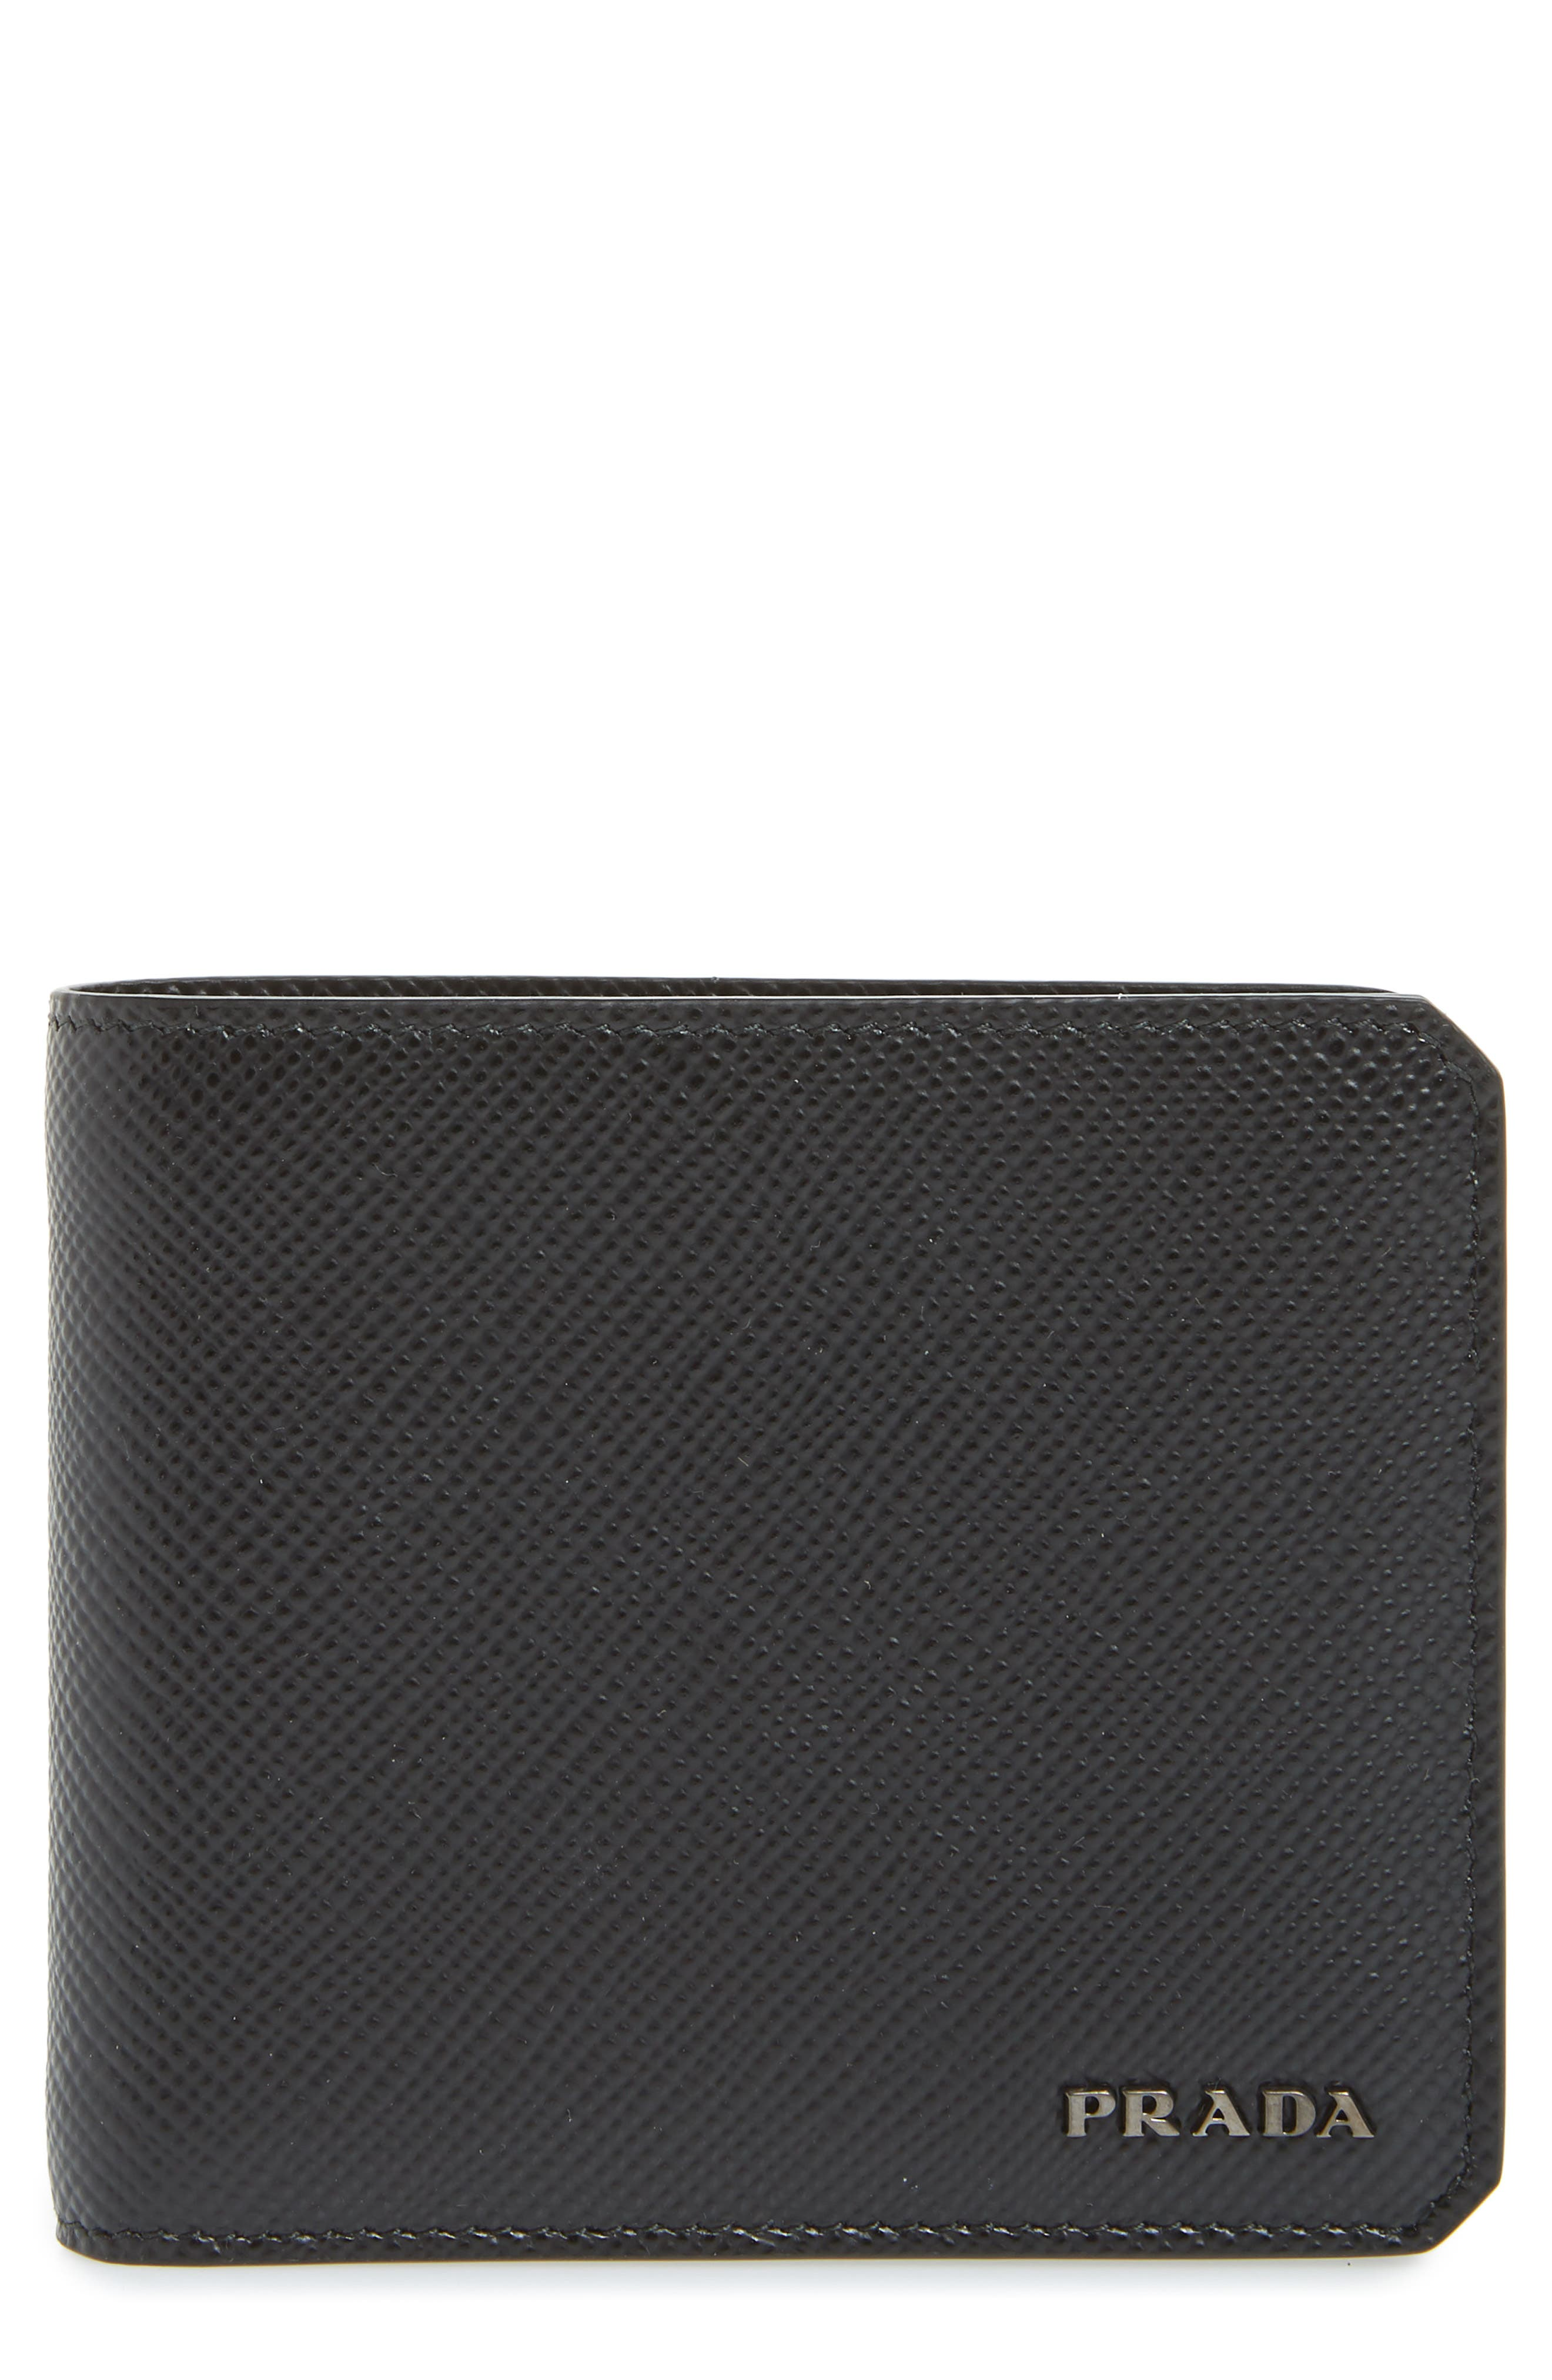 Saffiano Leather Wallet,                         Main,                         color, BLACK